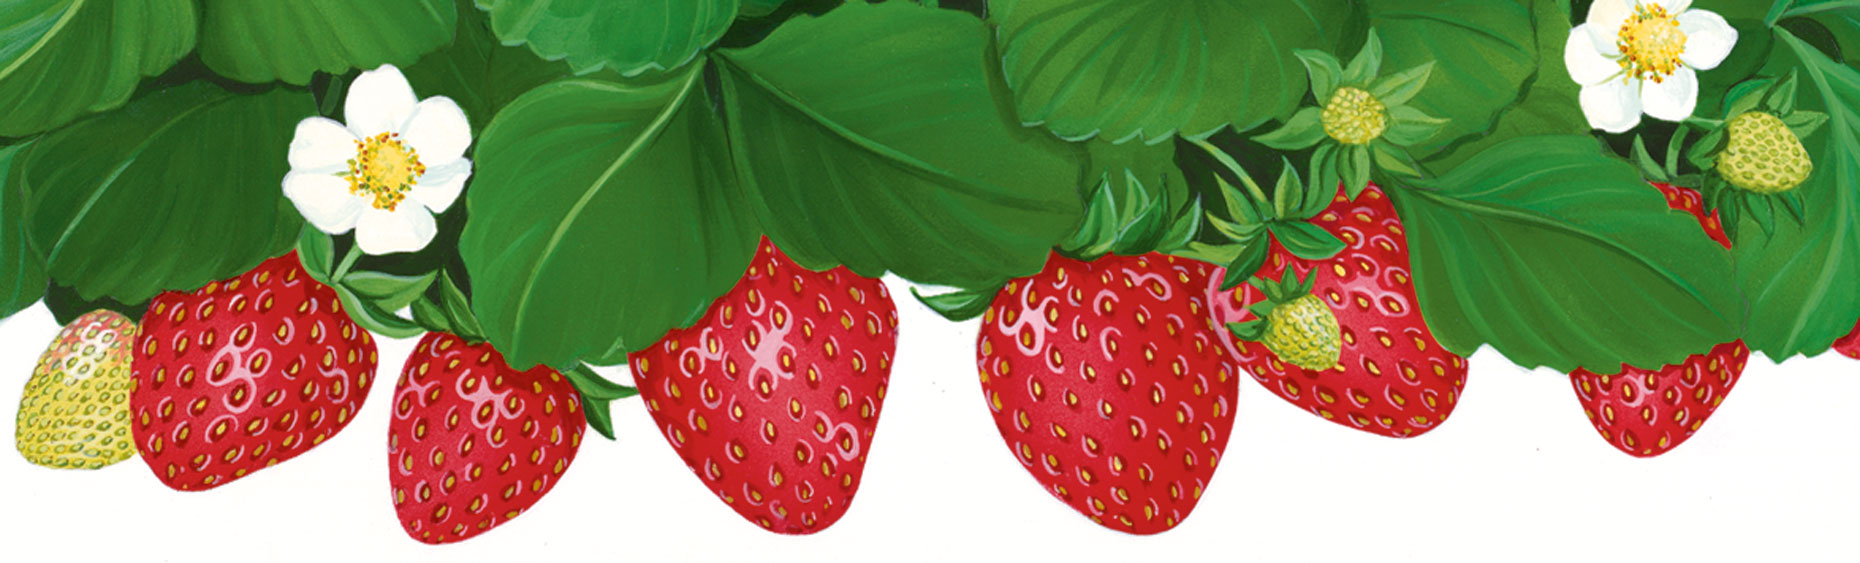 Strawberriescroppedweb